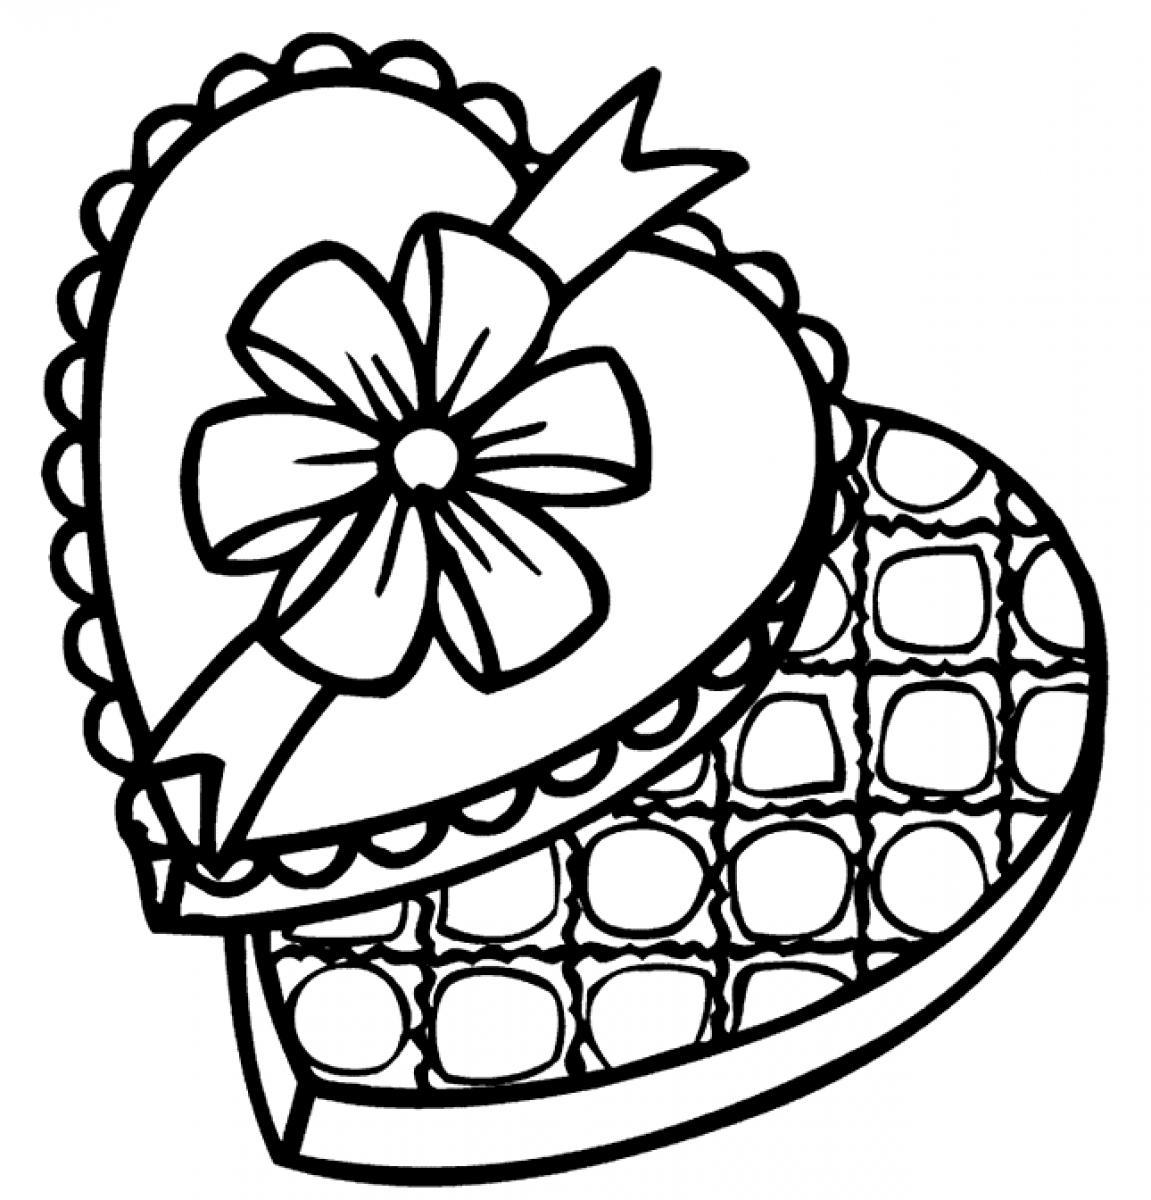 Free coloring pages of the chocolate touch